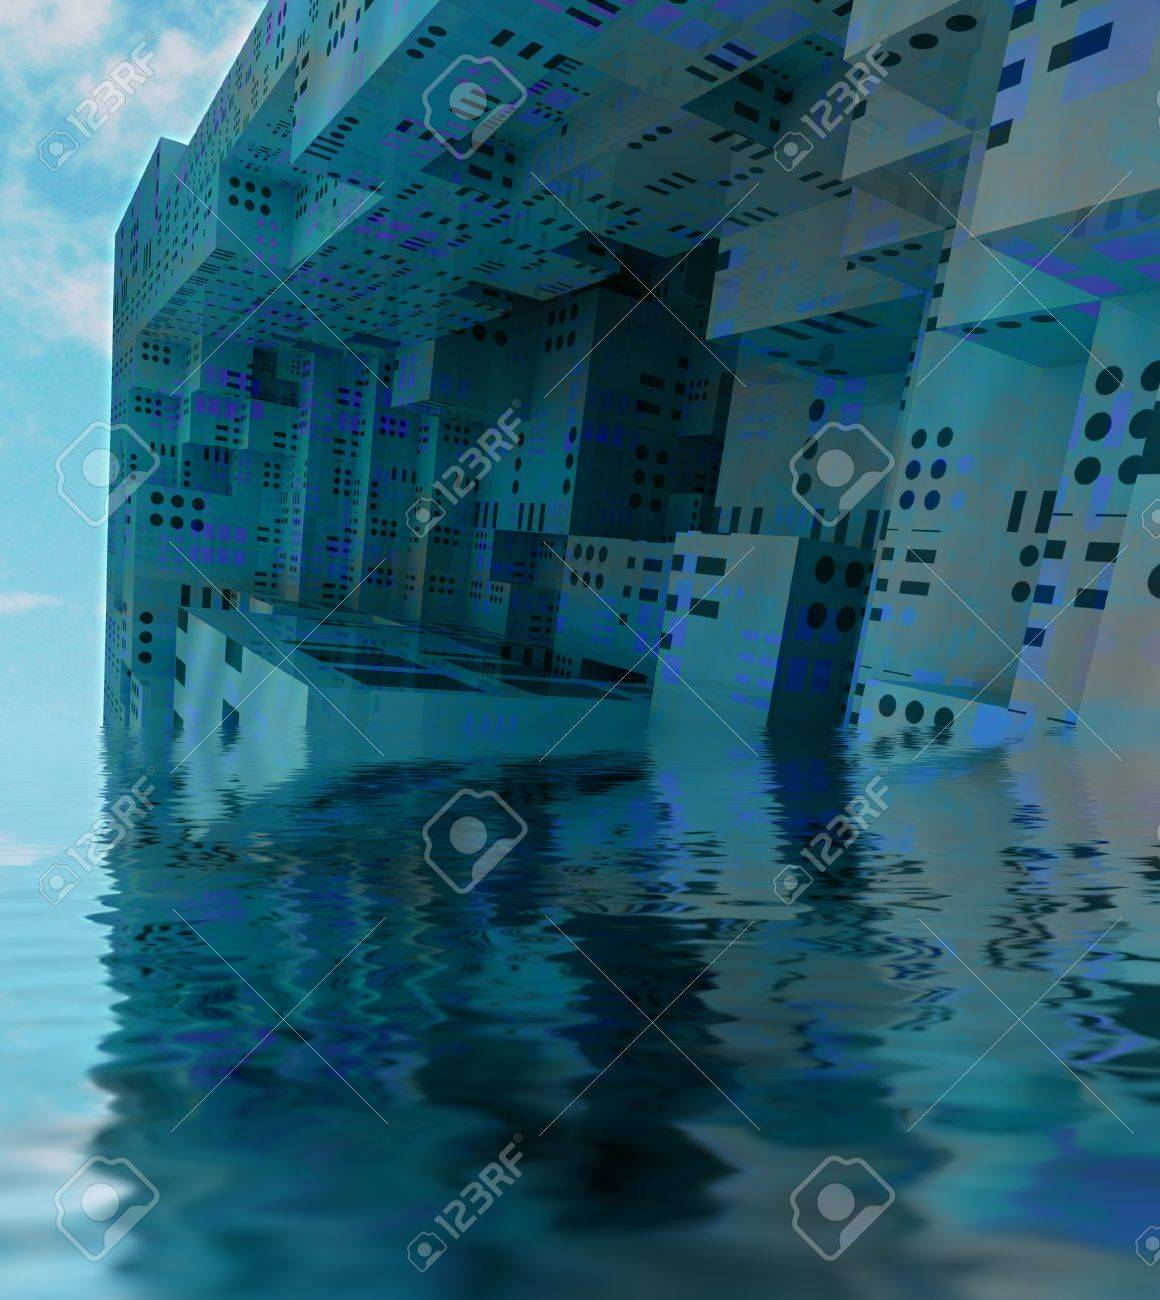 Sunked Modern City Observation Spaceship With Water Reflection Stock Photo Picture And Royalty Free Image Image